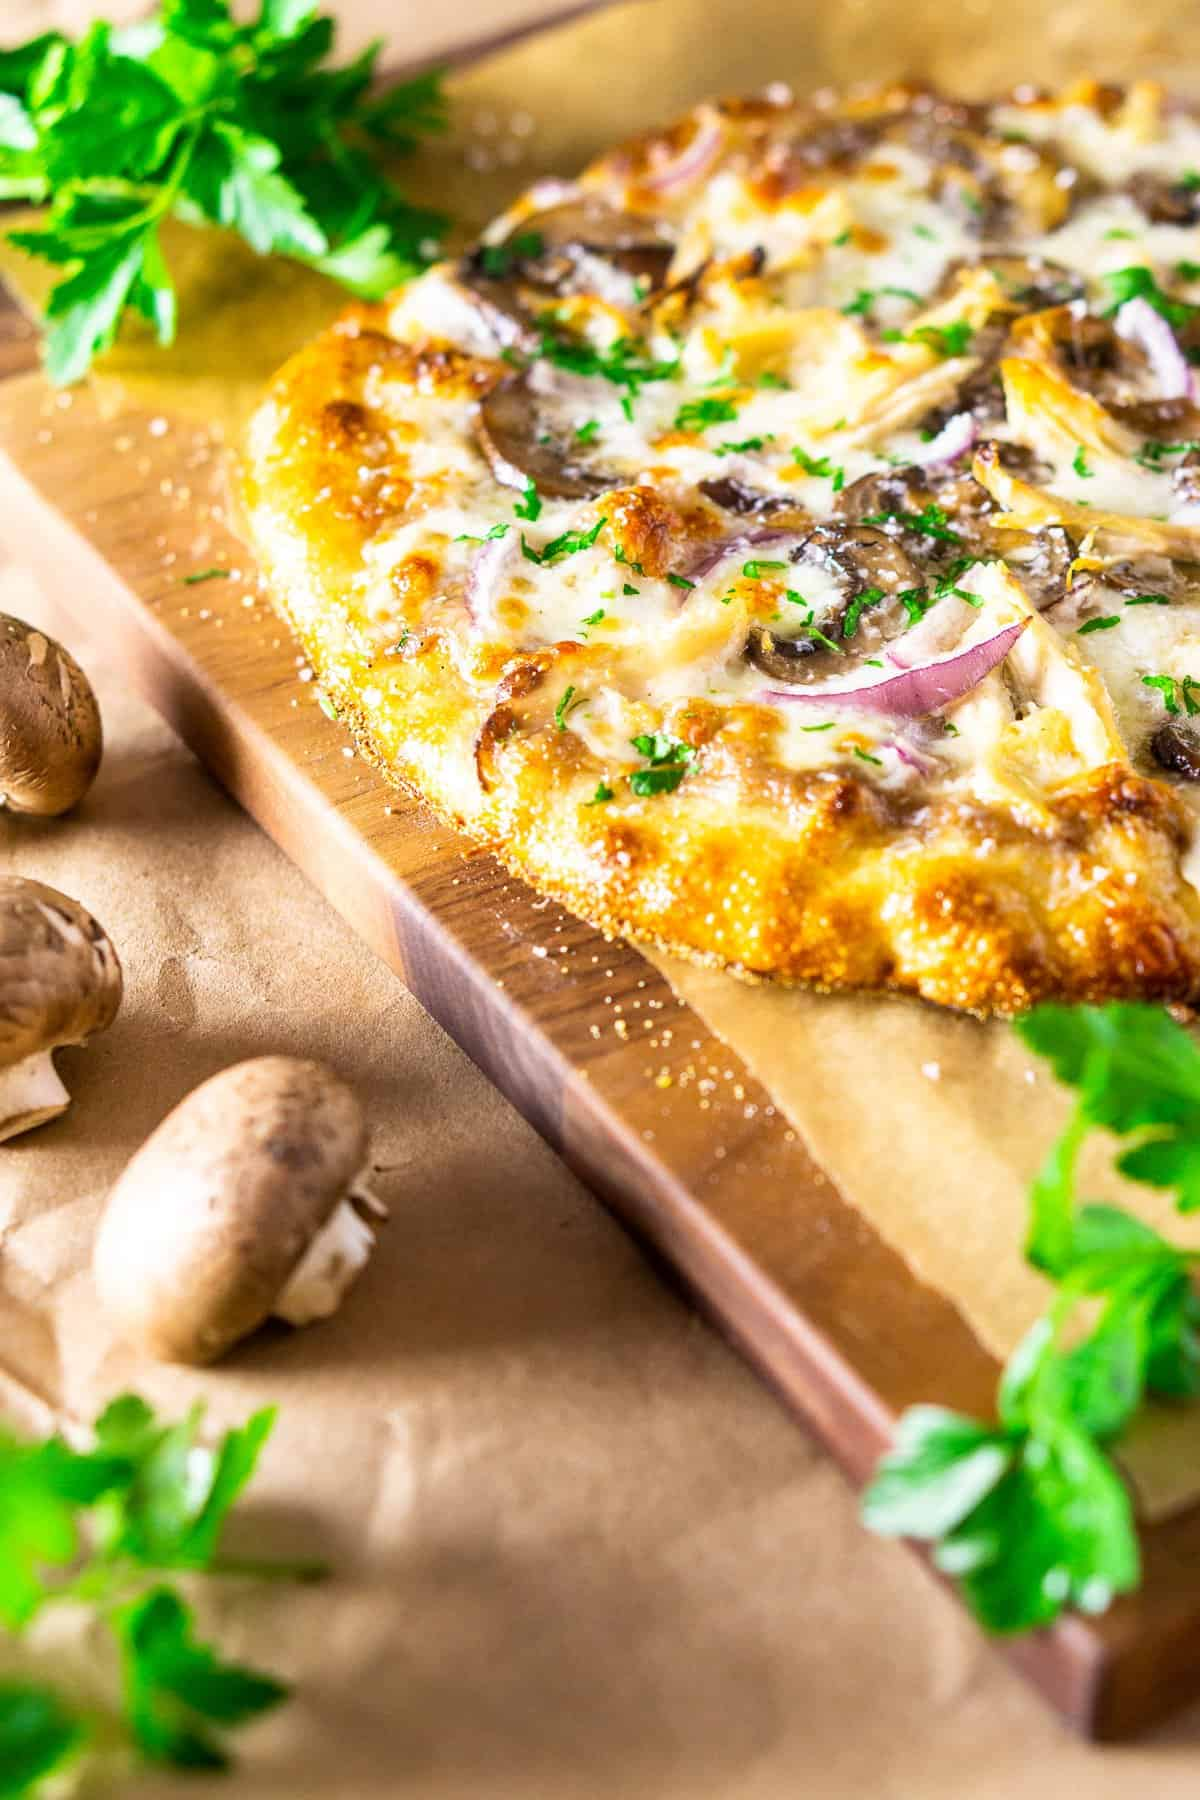 The coq au vin pizza on parchment paper and a cutting board with mushrooms and parsley.